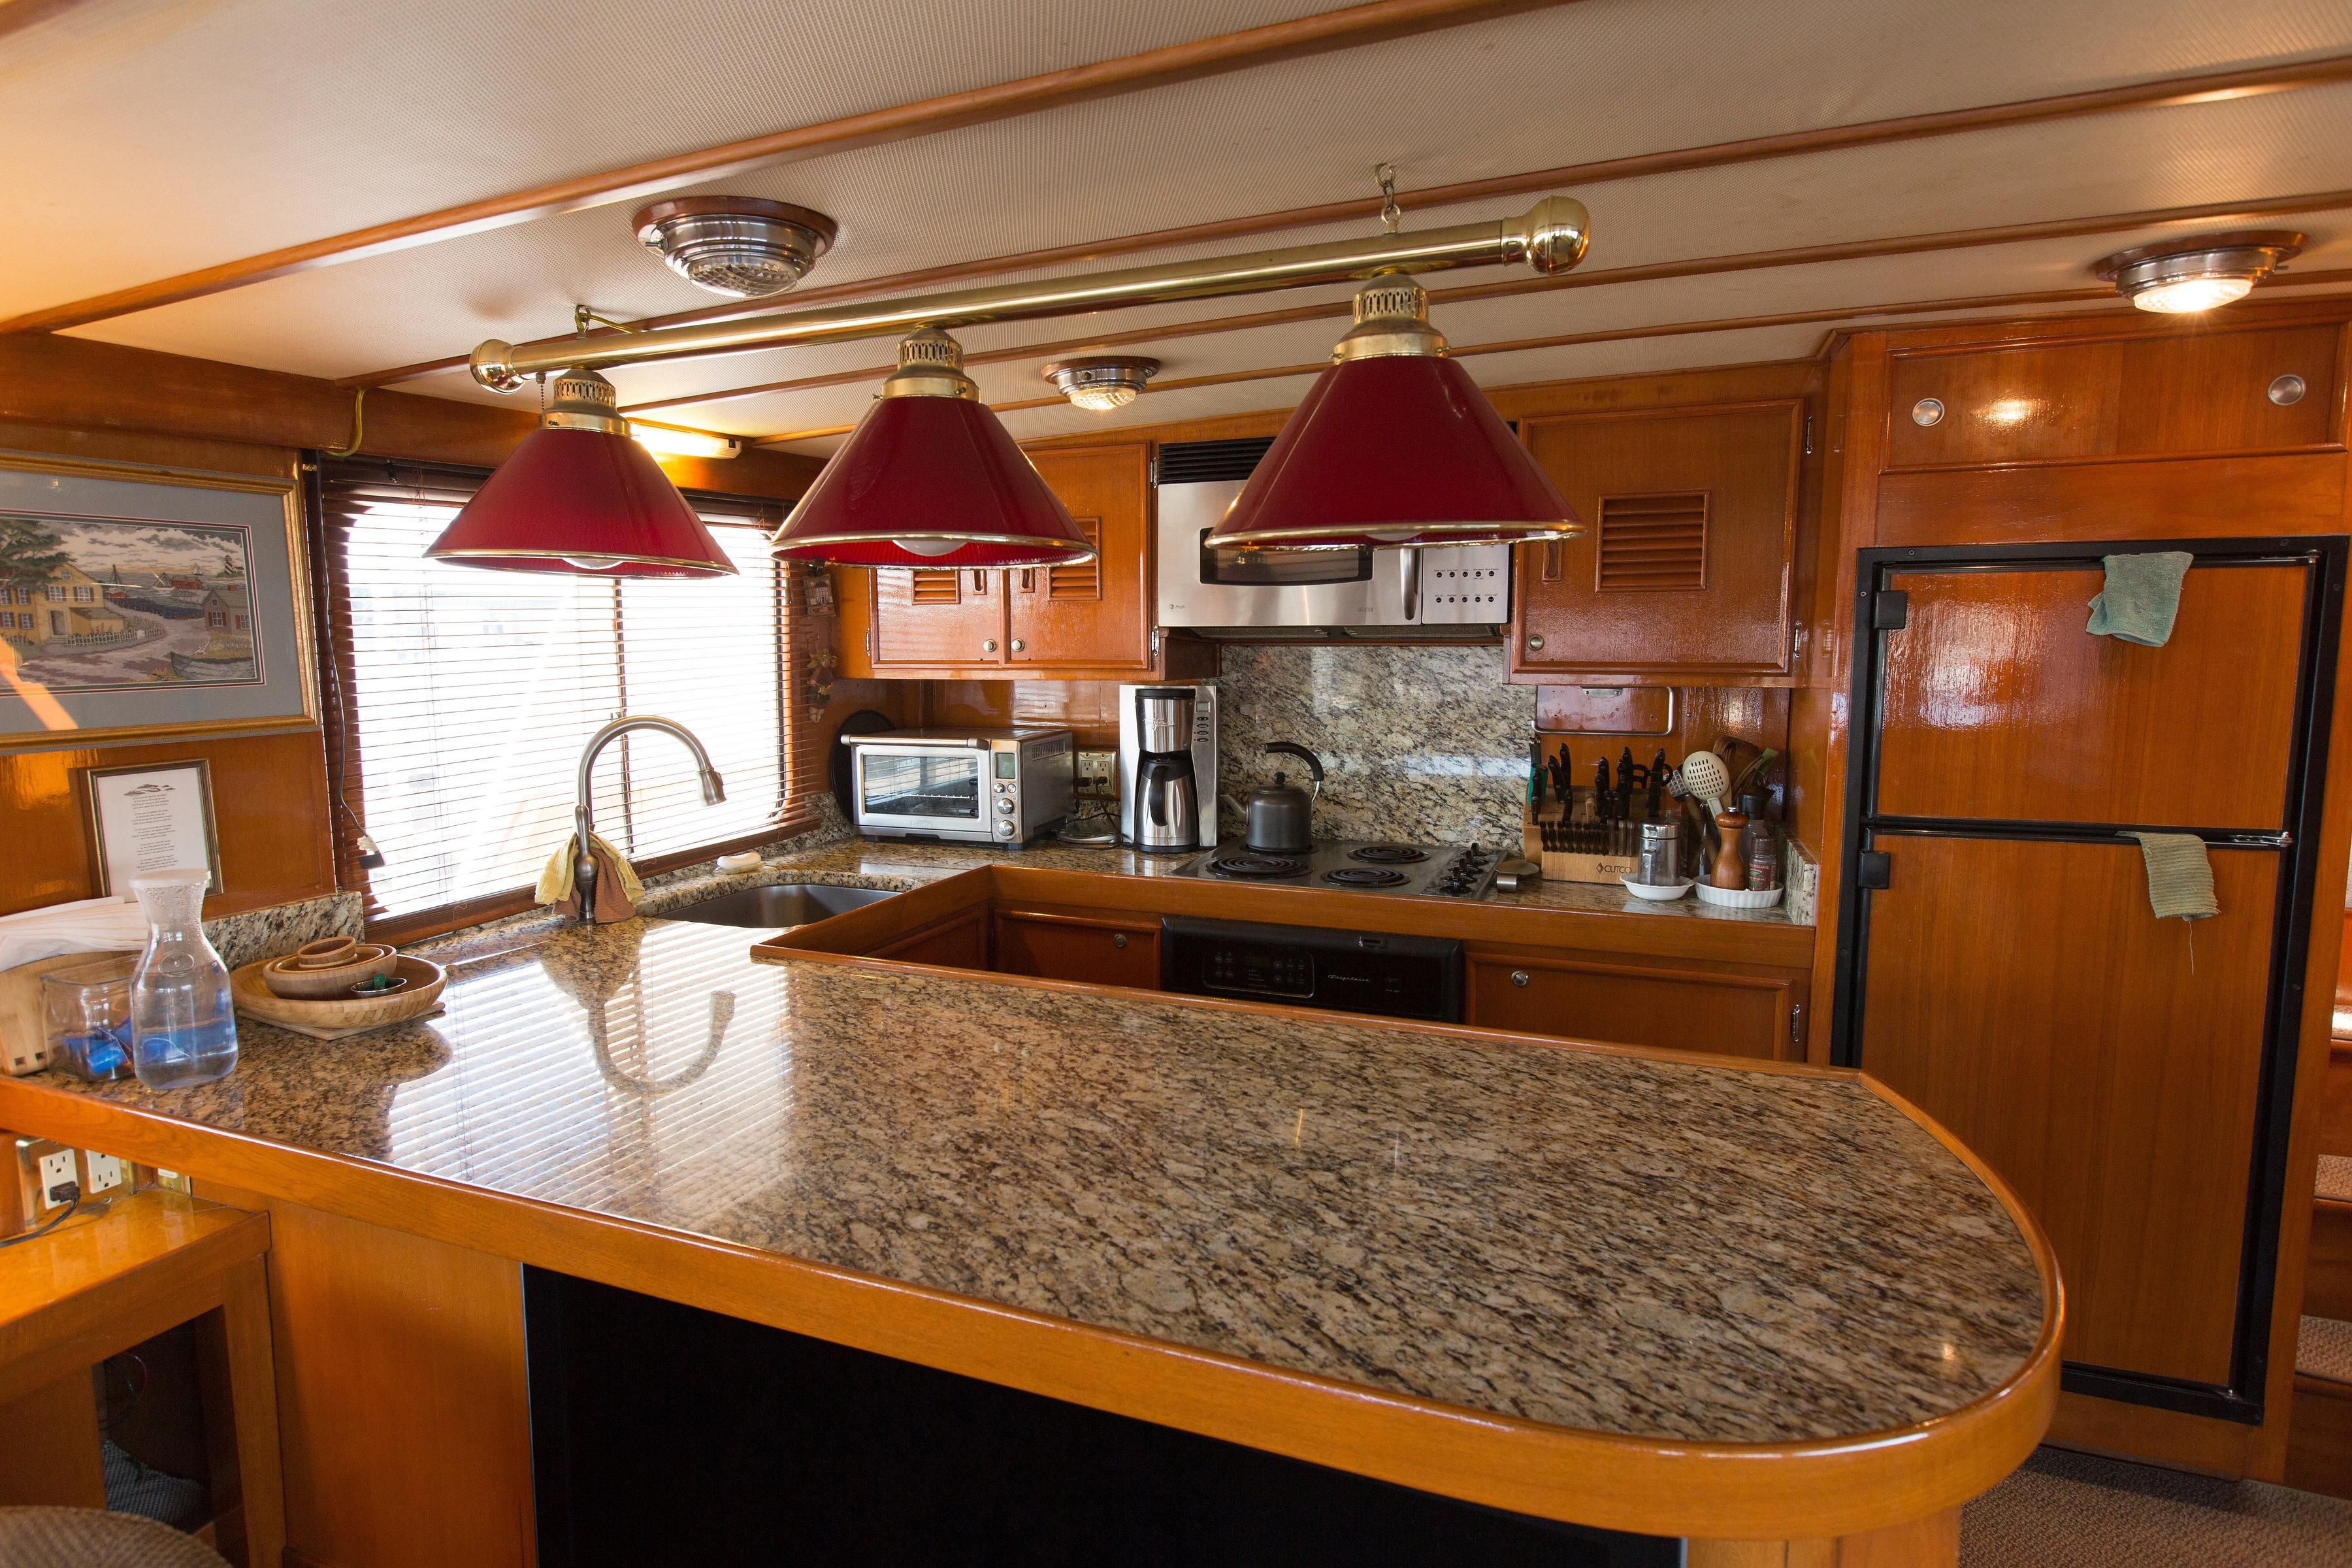 Galley countertop